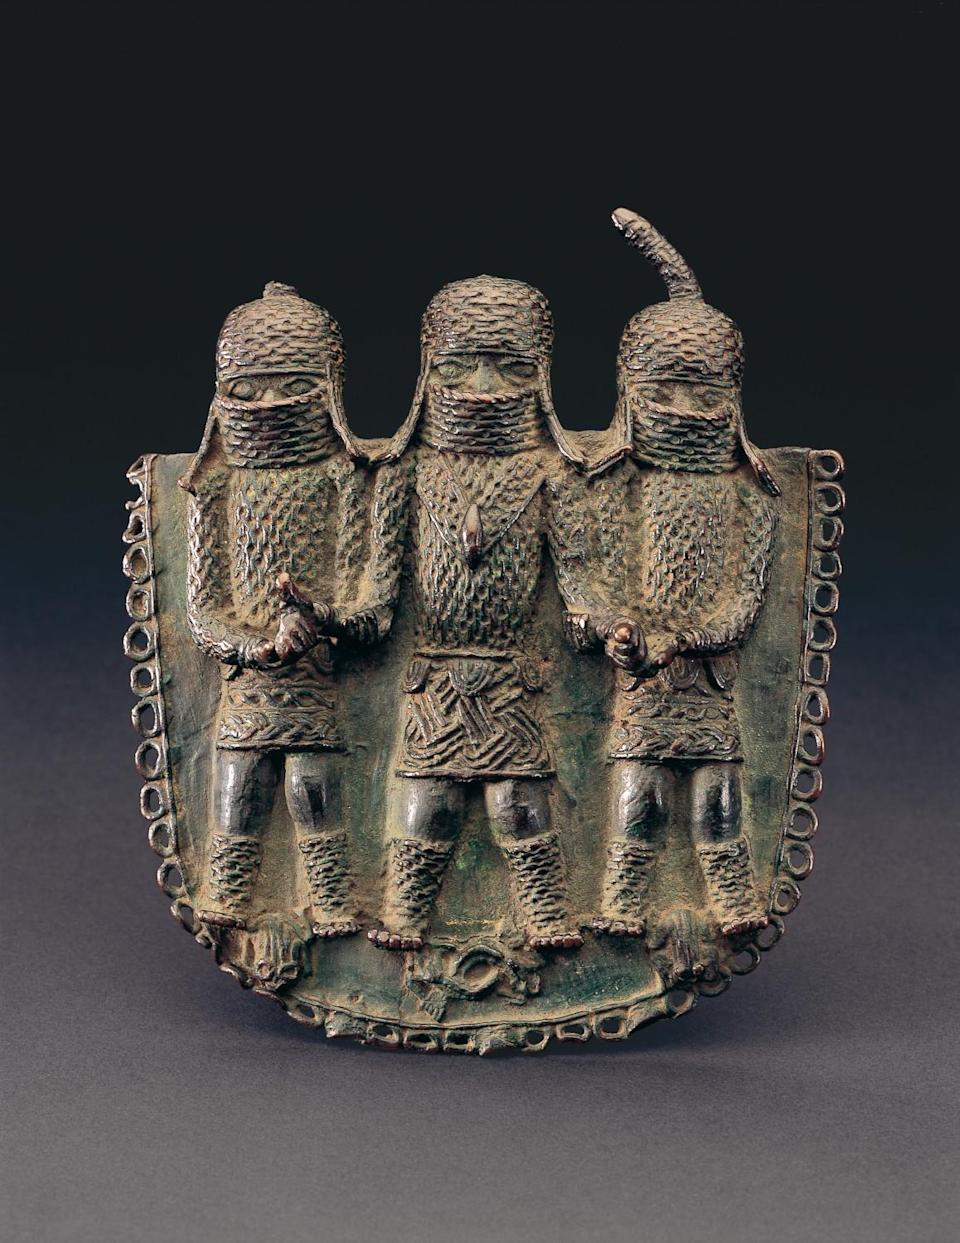 A cast copper alloy Benin pendant with figures of three people in relief